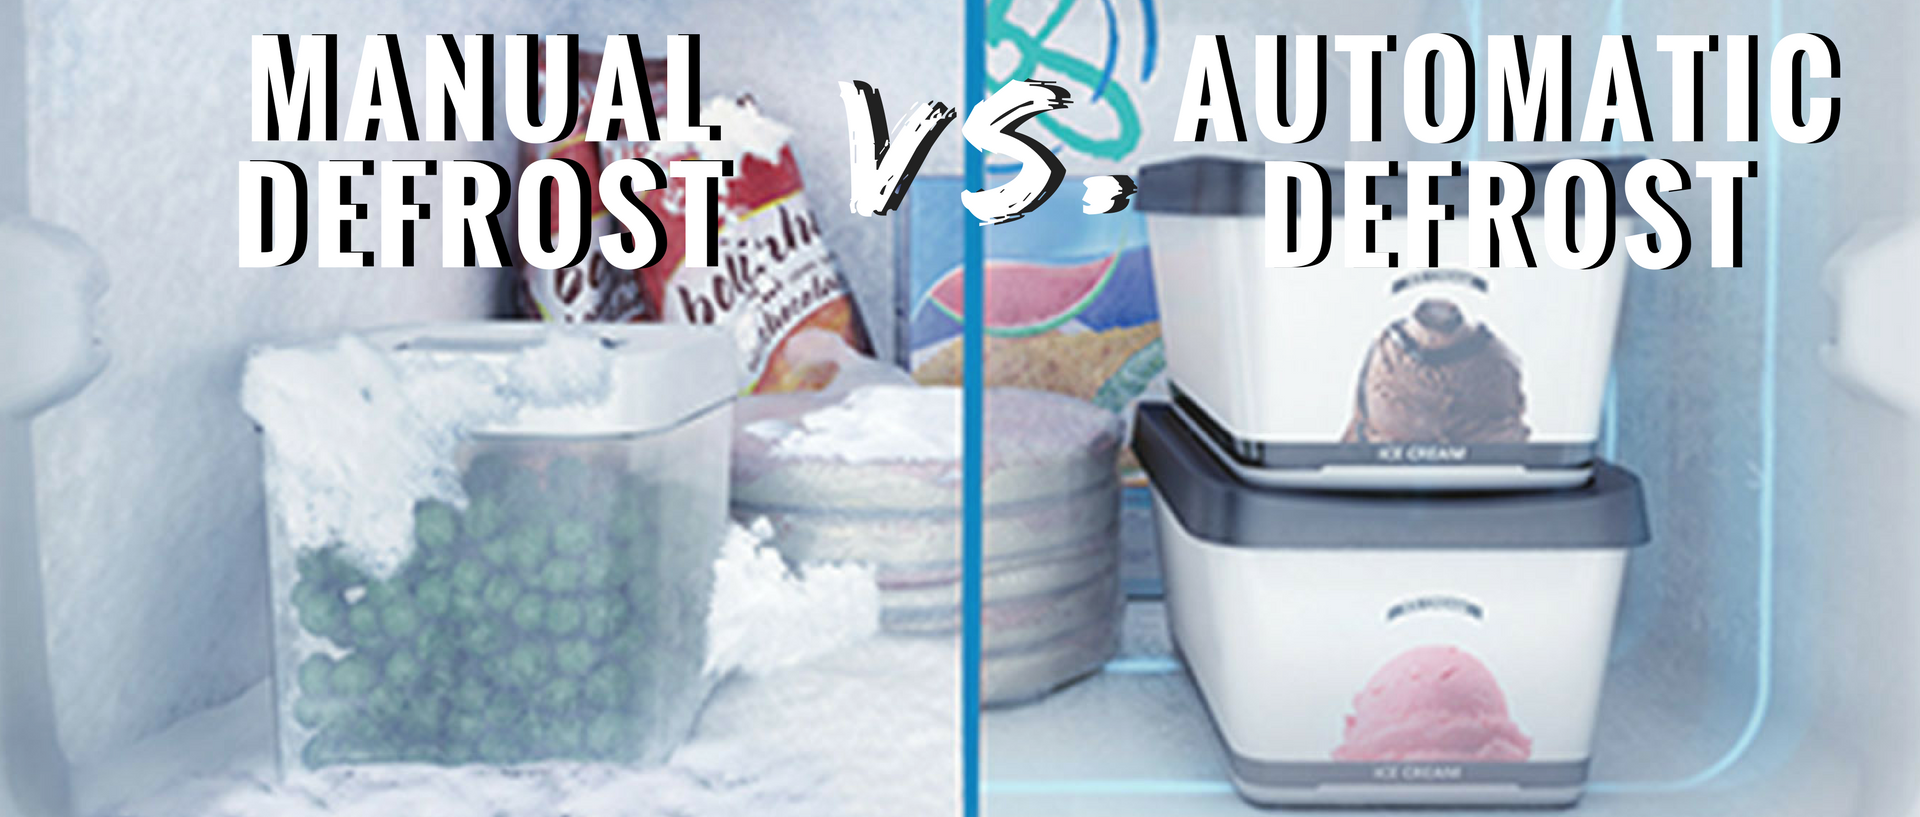 manual vs automatic defrost